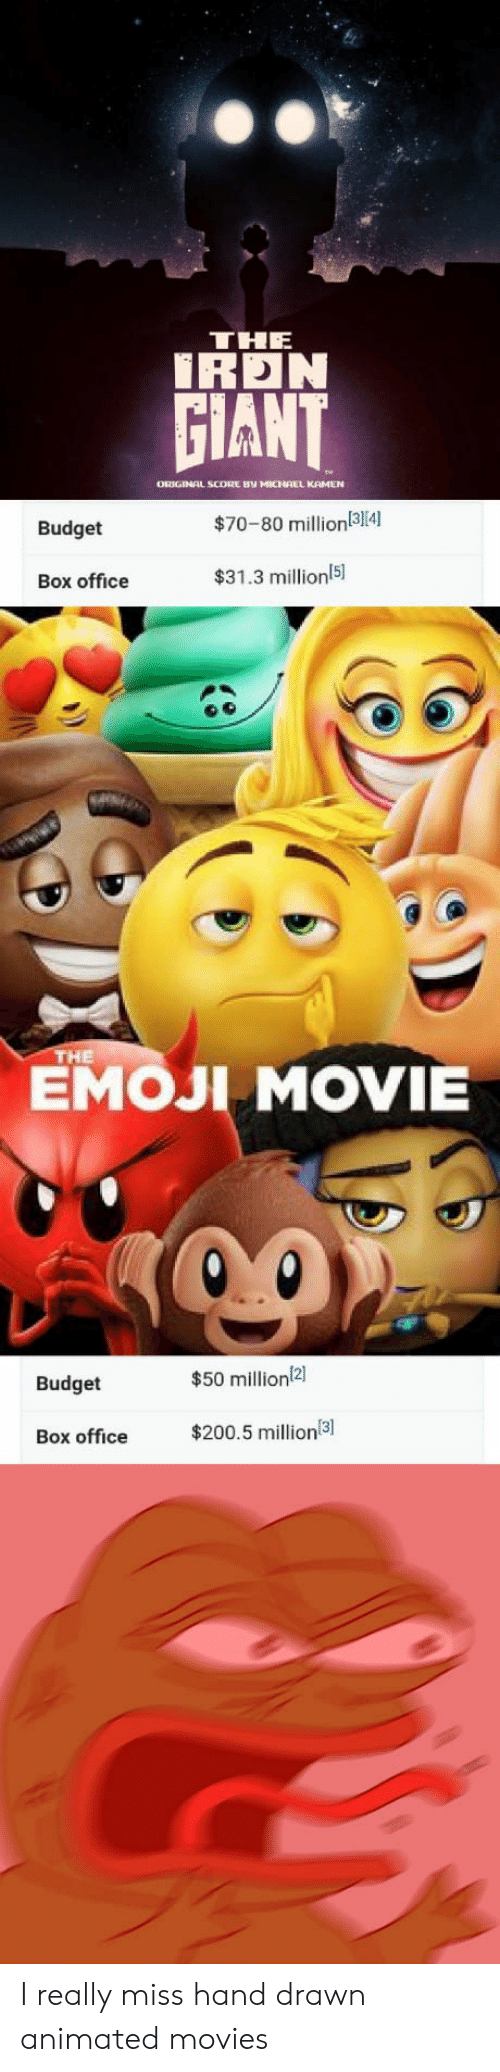 Emoji Movie: THE  İRDN  GIANT  ORIGINAL SCODRE BV MICHAEL KAMEN  Budget  $70-80 million(314)  Box office  $31.3 millionl5  151  EMOJI MOVIE  НЕ  Budget  $50 million2]  Box office $200.5 million I really miss hand drawn animated movies